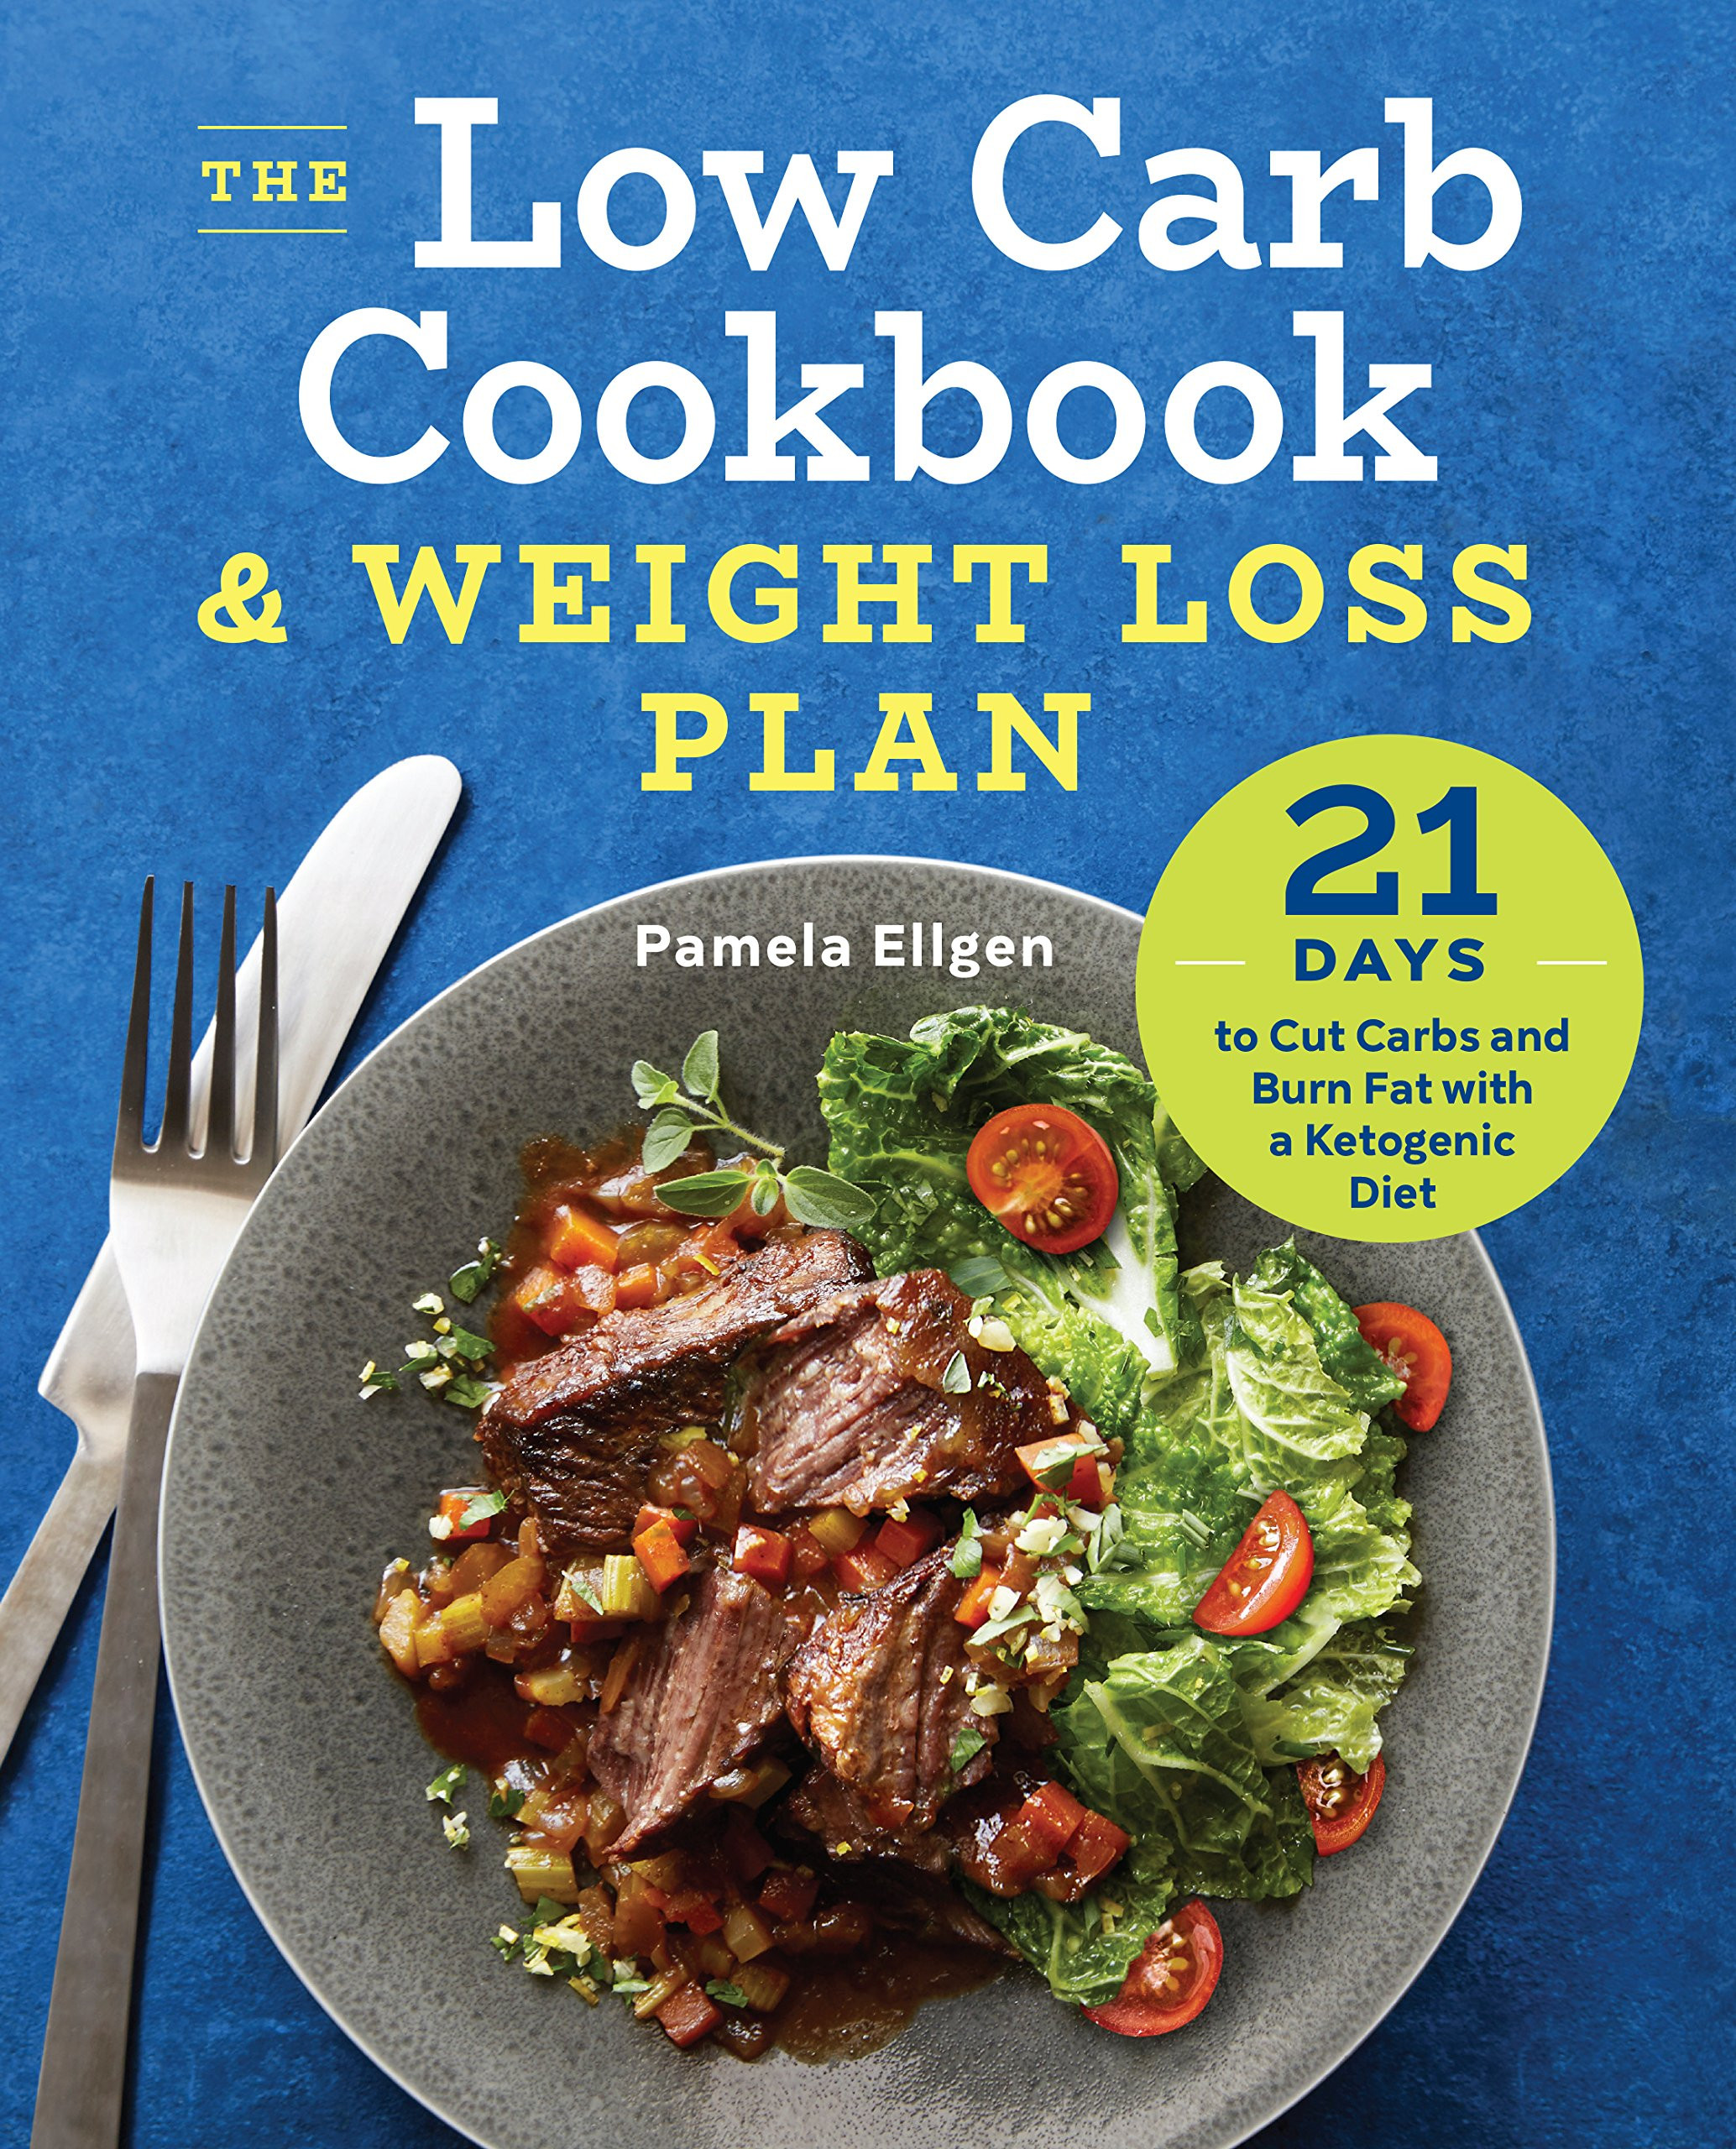 Low Carb Diet Plan 21 Days Losing Weight  The Low Carb Cookbook & Weight Loss Plan 21 Days To Cut